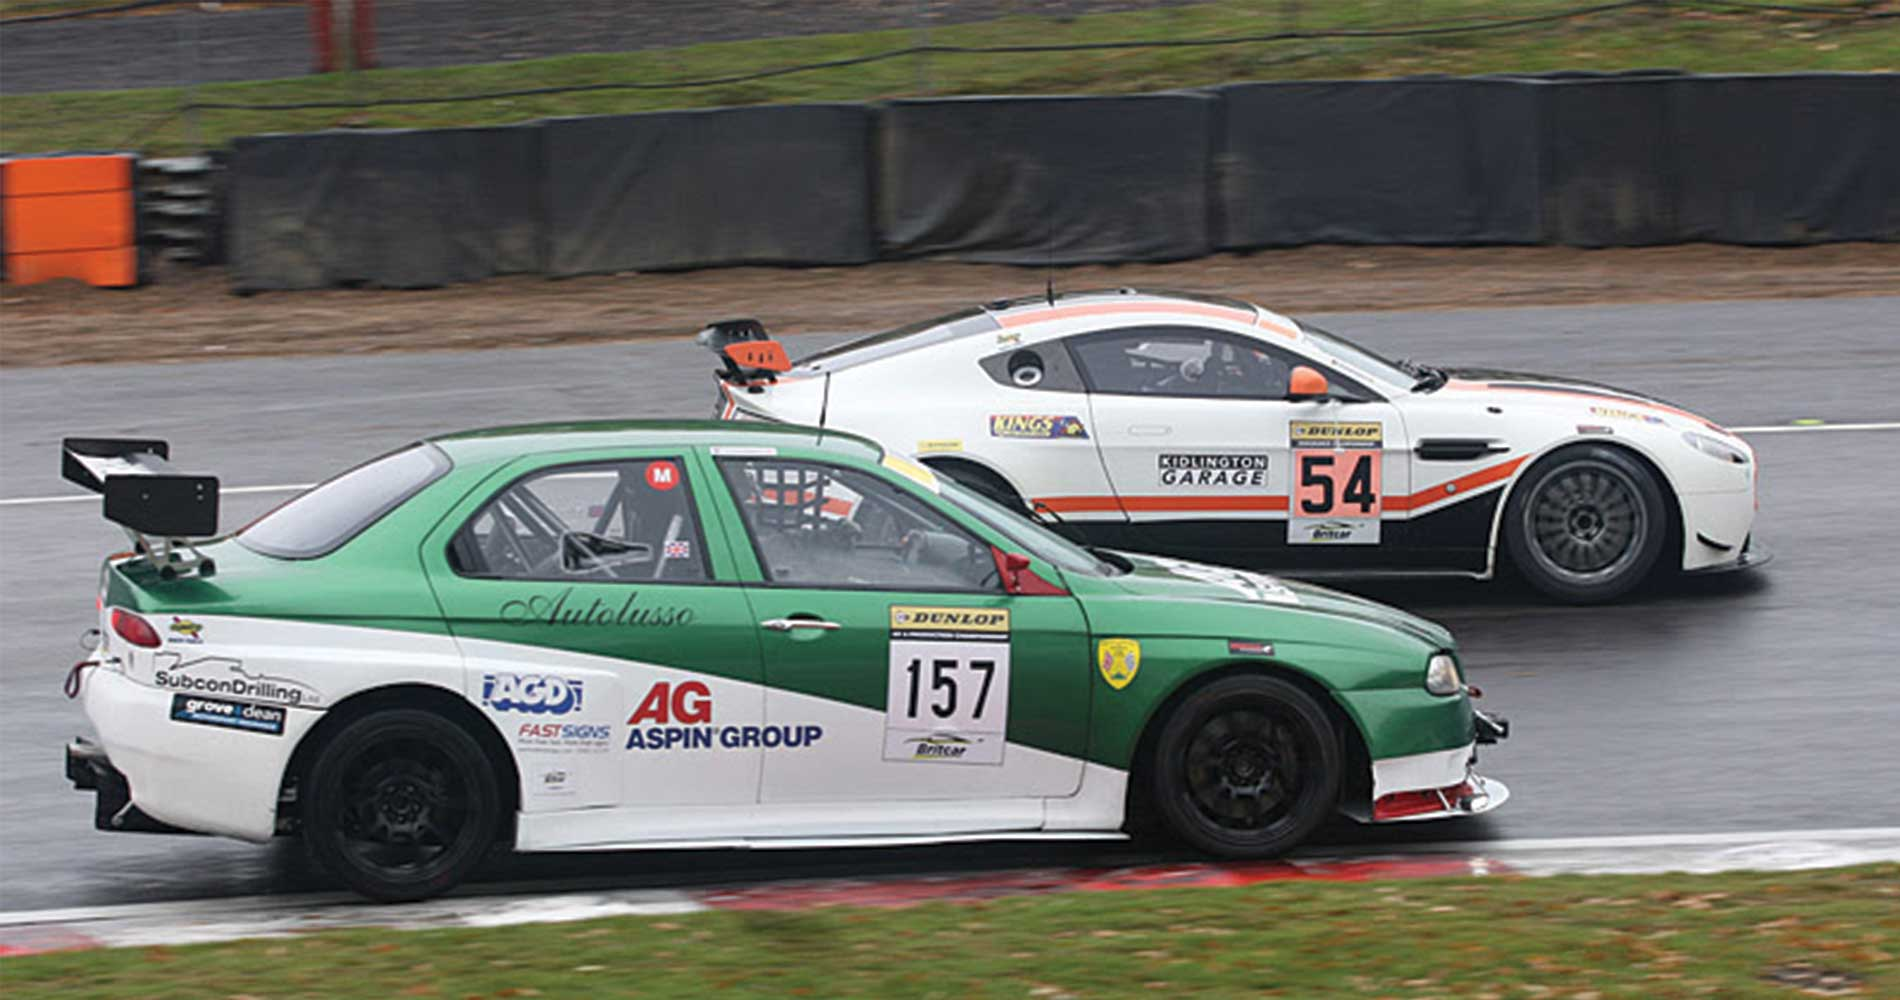 race-report-dunlop-gt-production-championship-brands-hatch-1213th-november-2016-motorsportdays-track-days-3